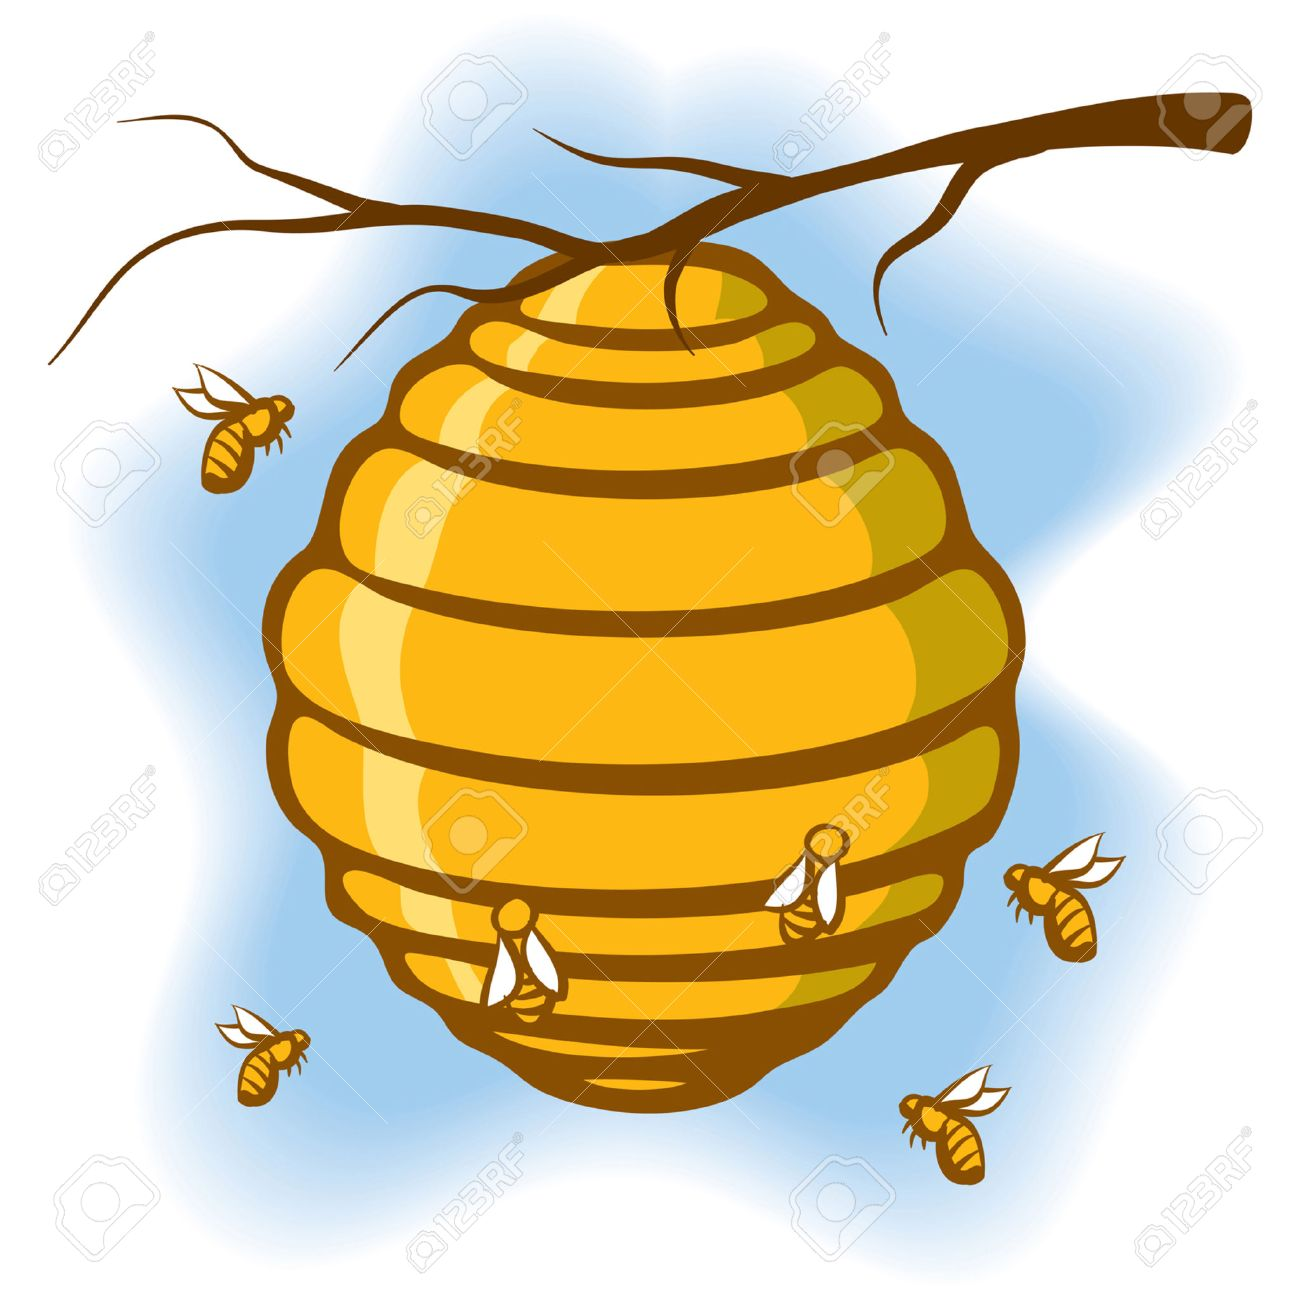 an illustration of a beehive suspended from a tree with bees